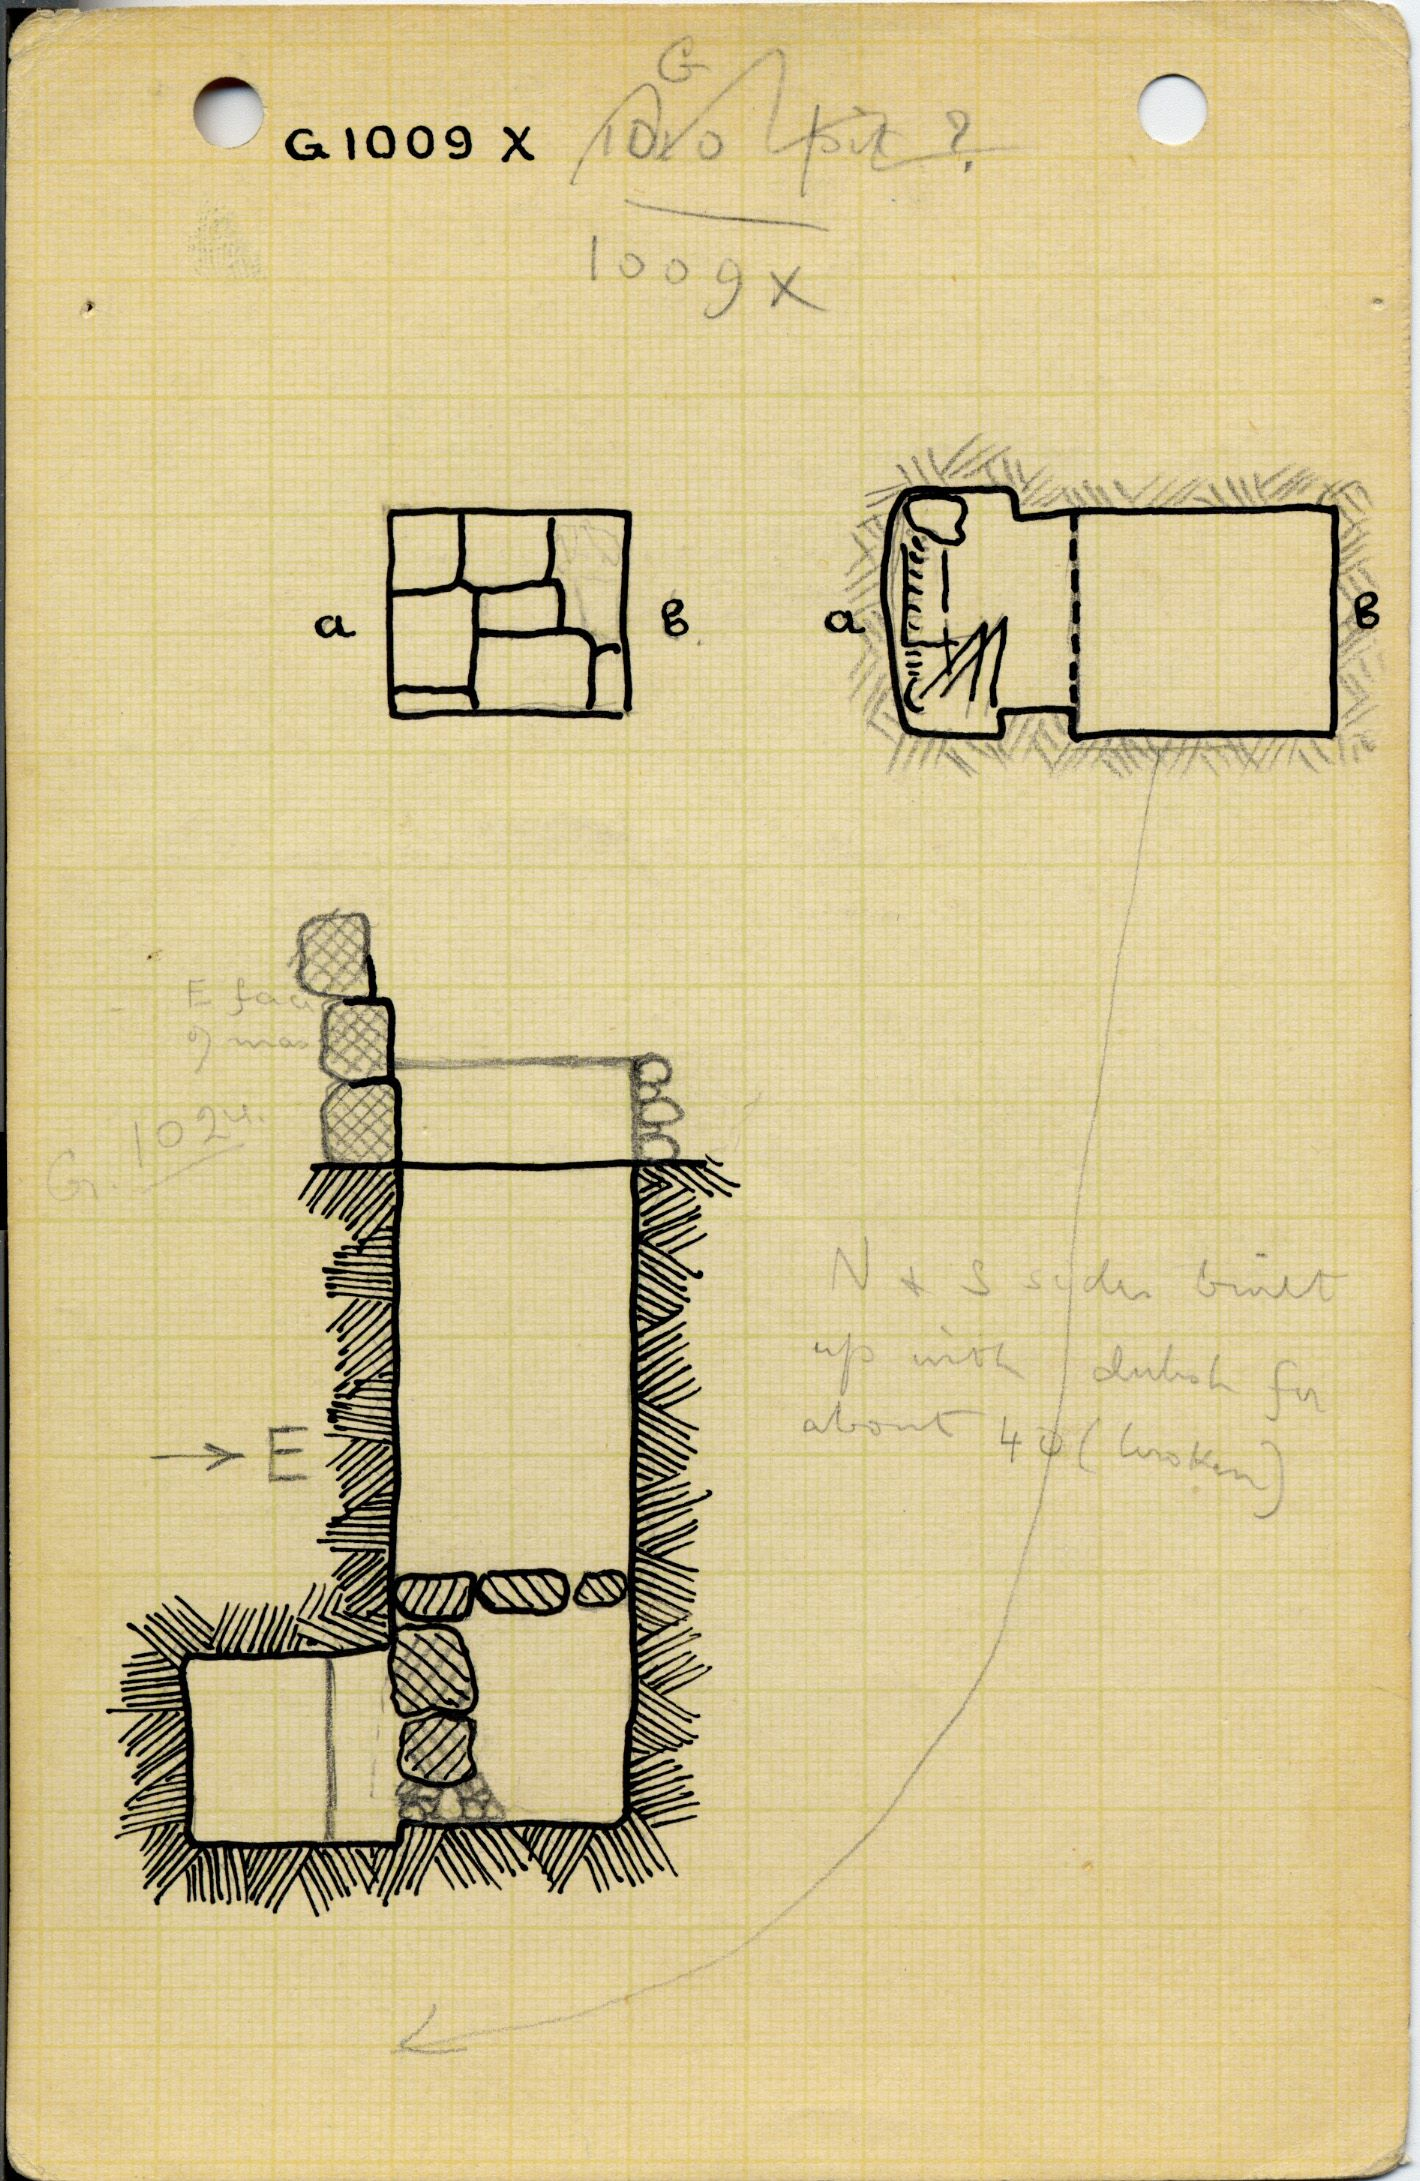 Maps and plans: G 1009, Shaft X